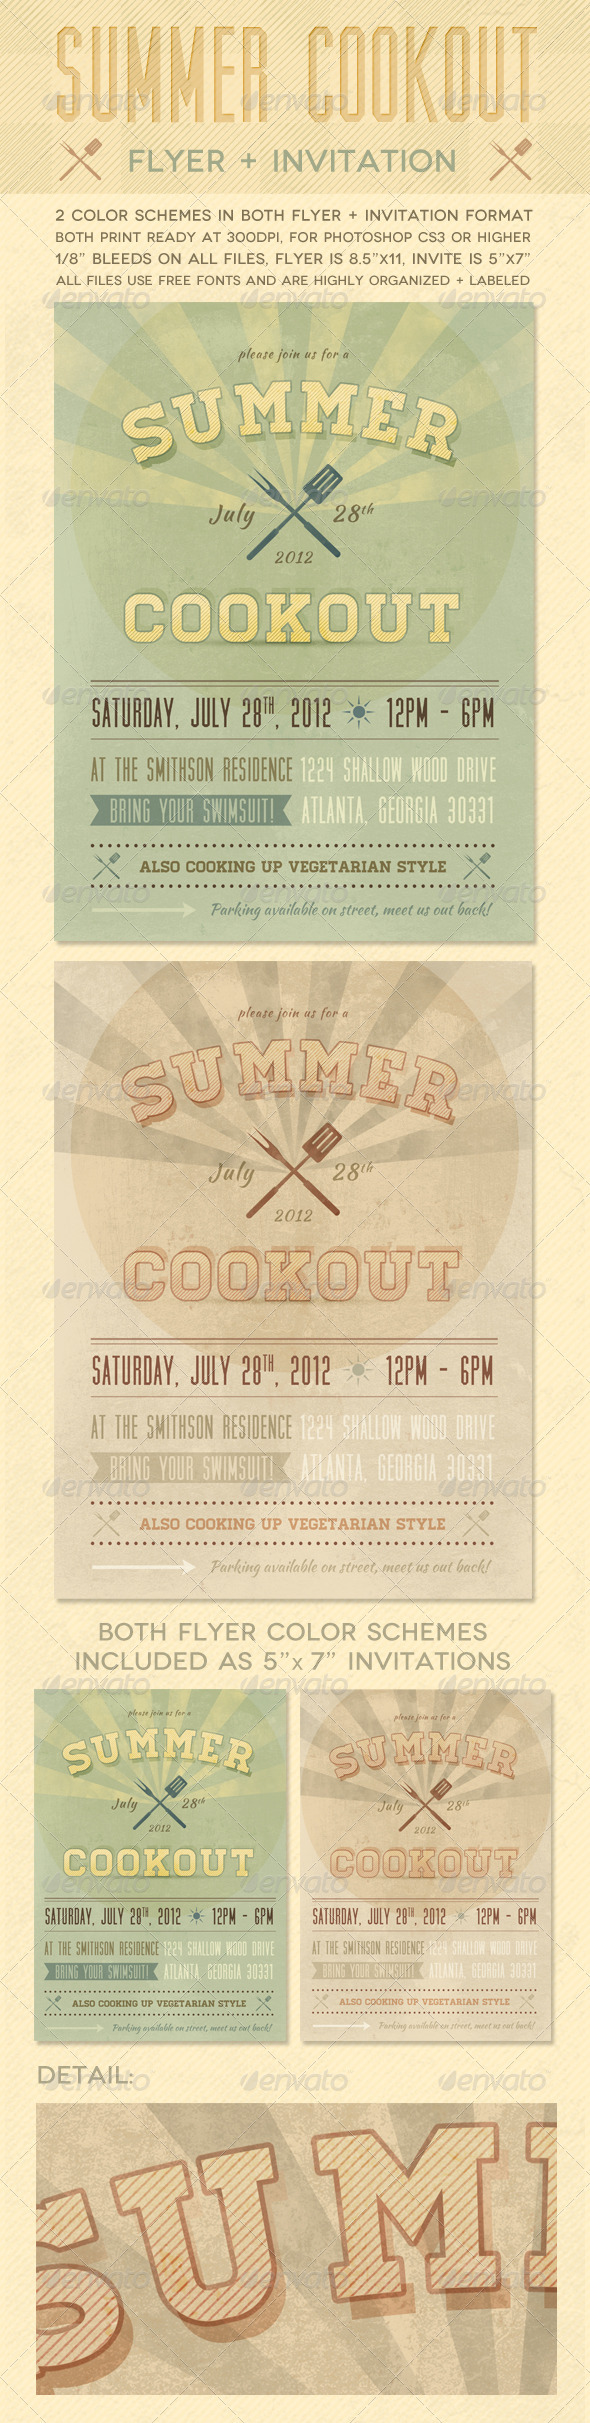 Summer Cookout Flyer + Invite - Events Flyers